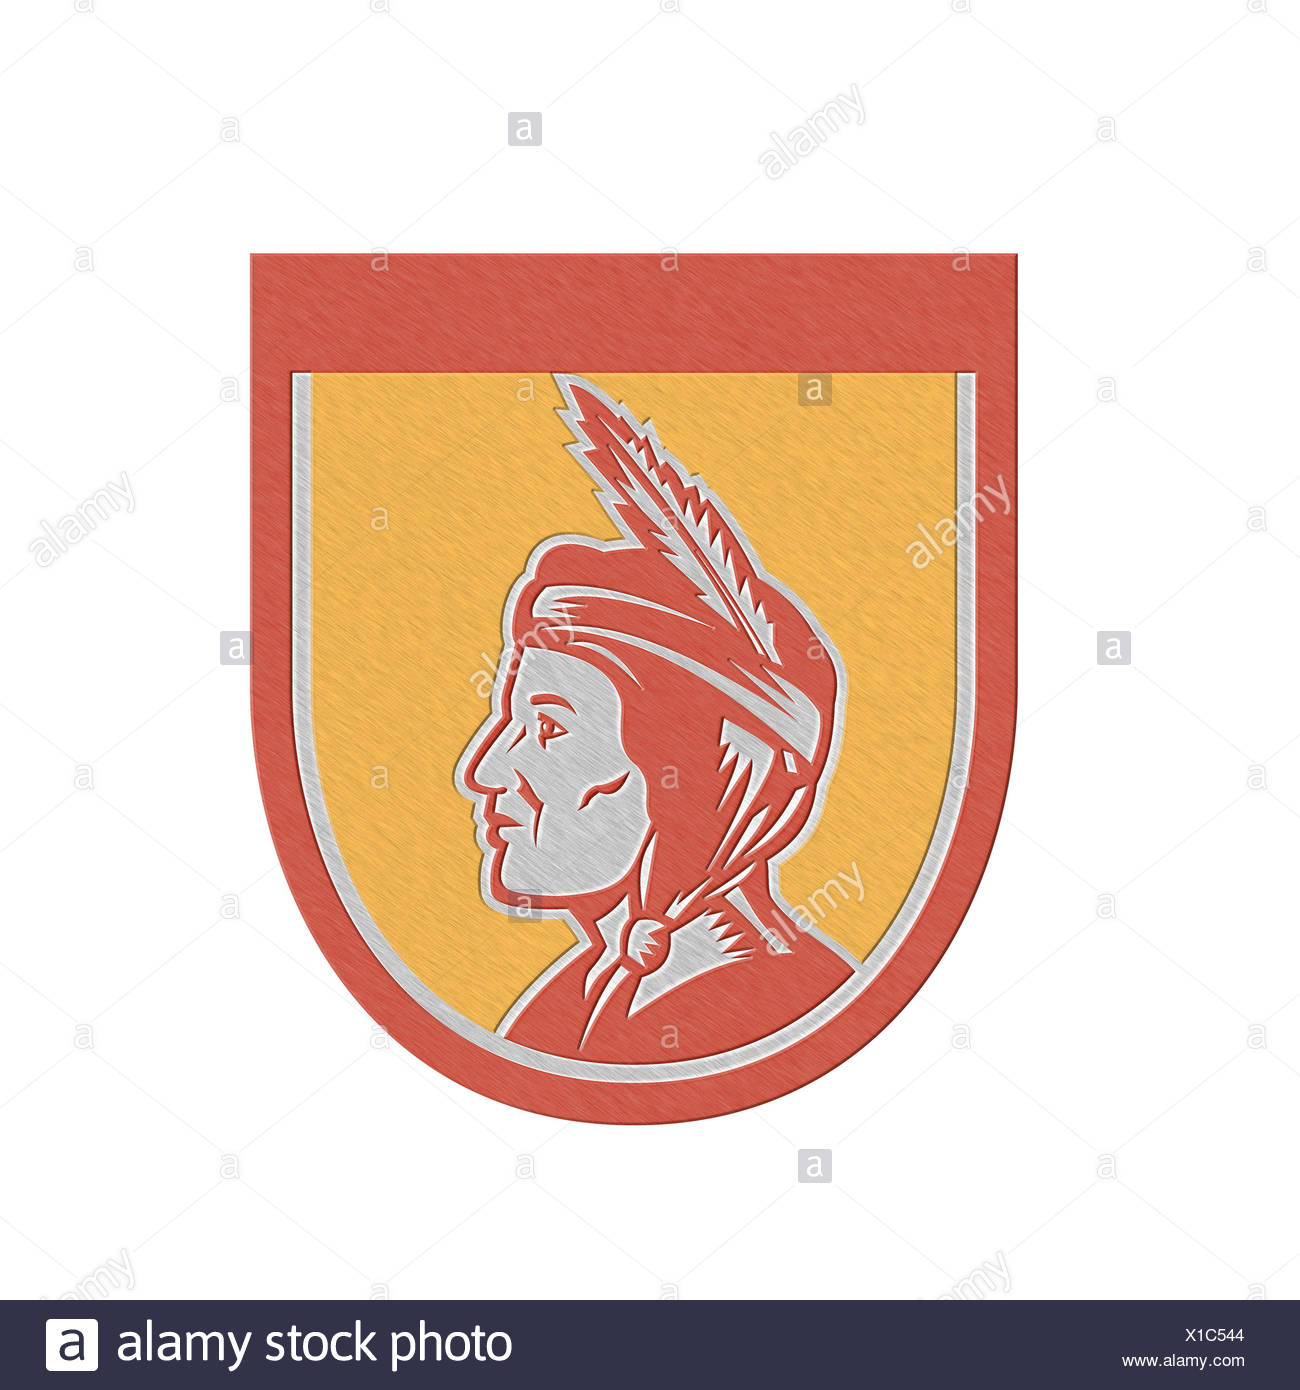 Metallic Native American Indian Chief Shield Retro - Stock Image